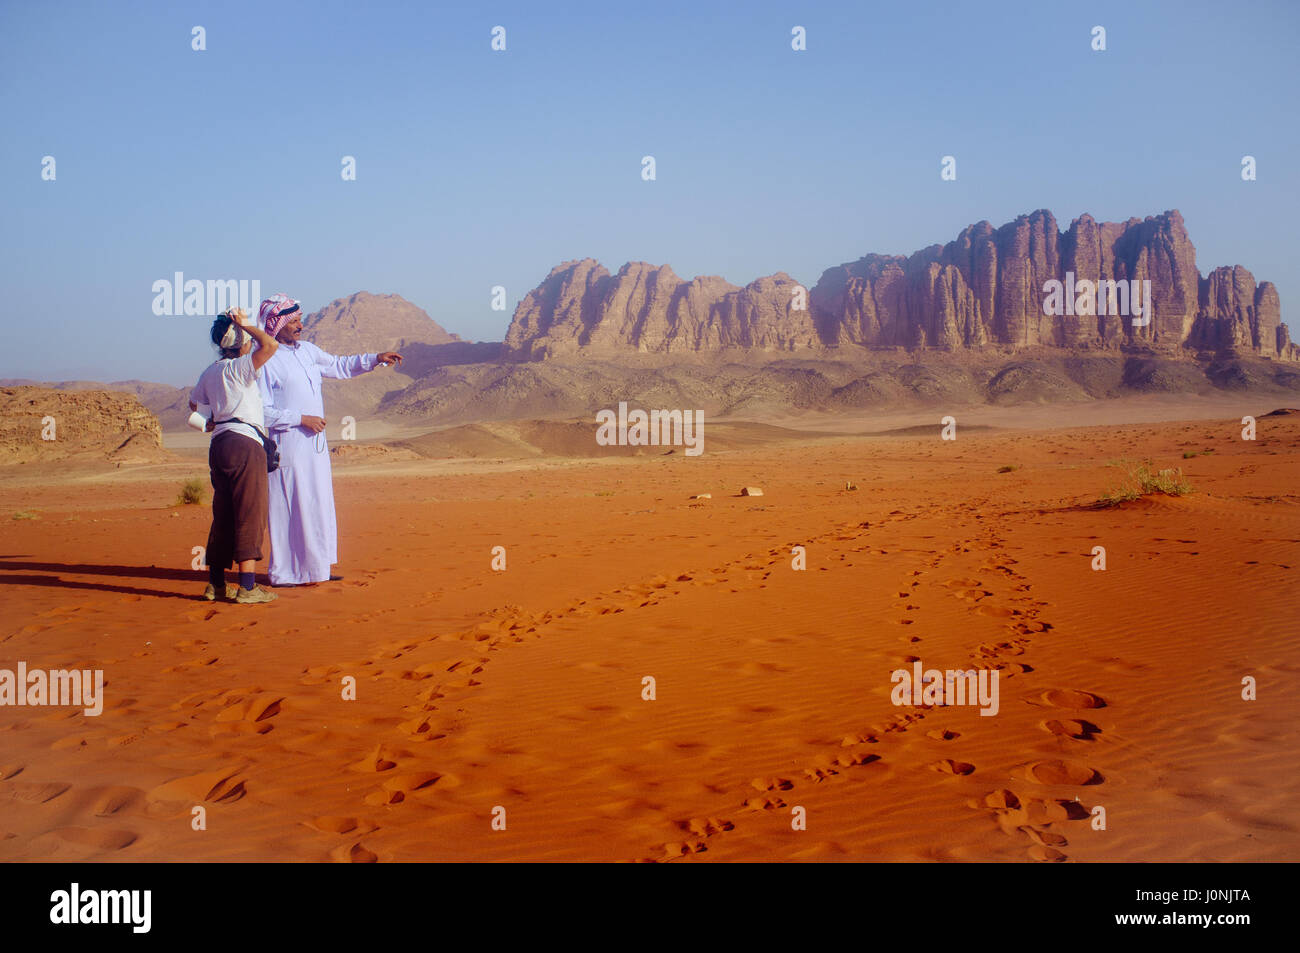 reputable site 29361 ad970 Beduin illustrating rocks formation to a female tourist ...